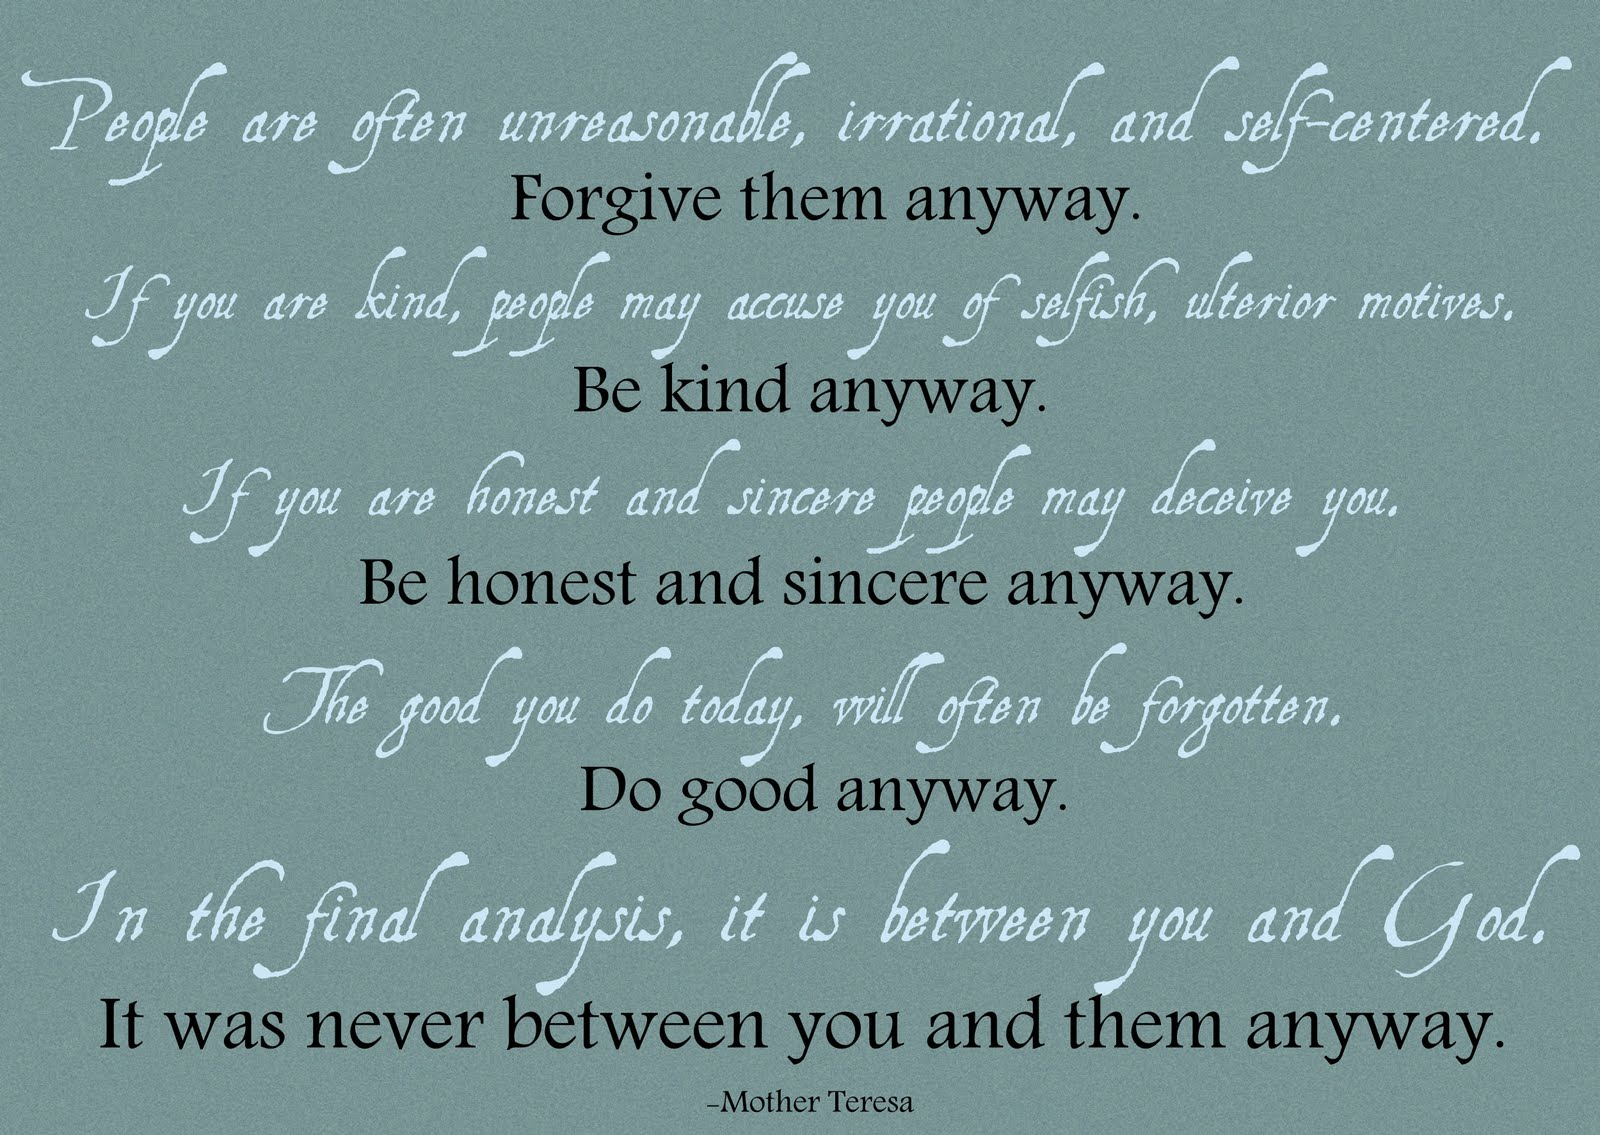 Mother Teresa Quotes Love Them Anyway Mother Teresa Poems